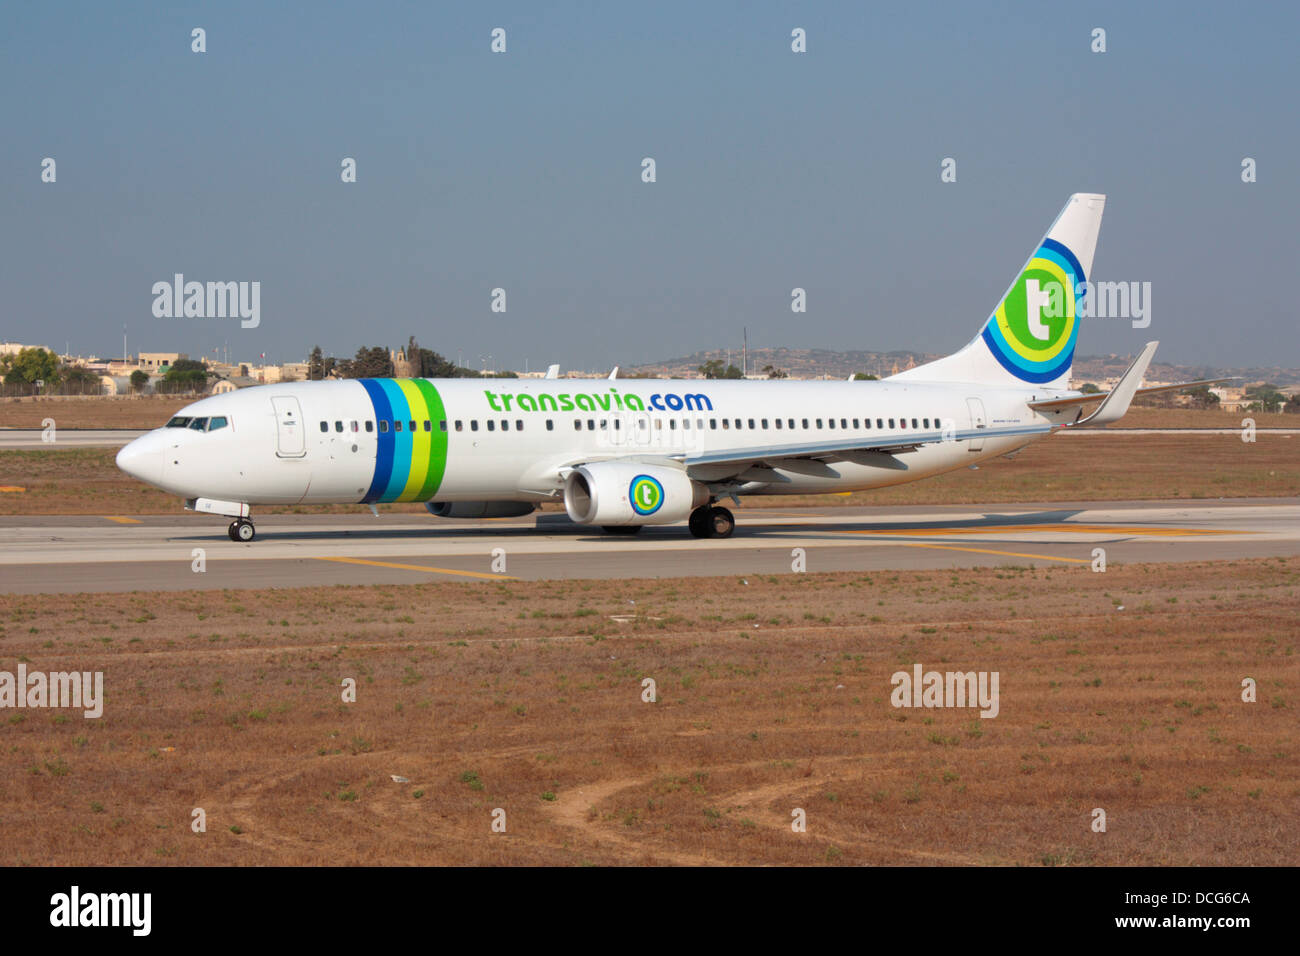 Air travel. Transavia Boeing 737-800 airliner taxiing for departure from Malta - Stock Image